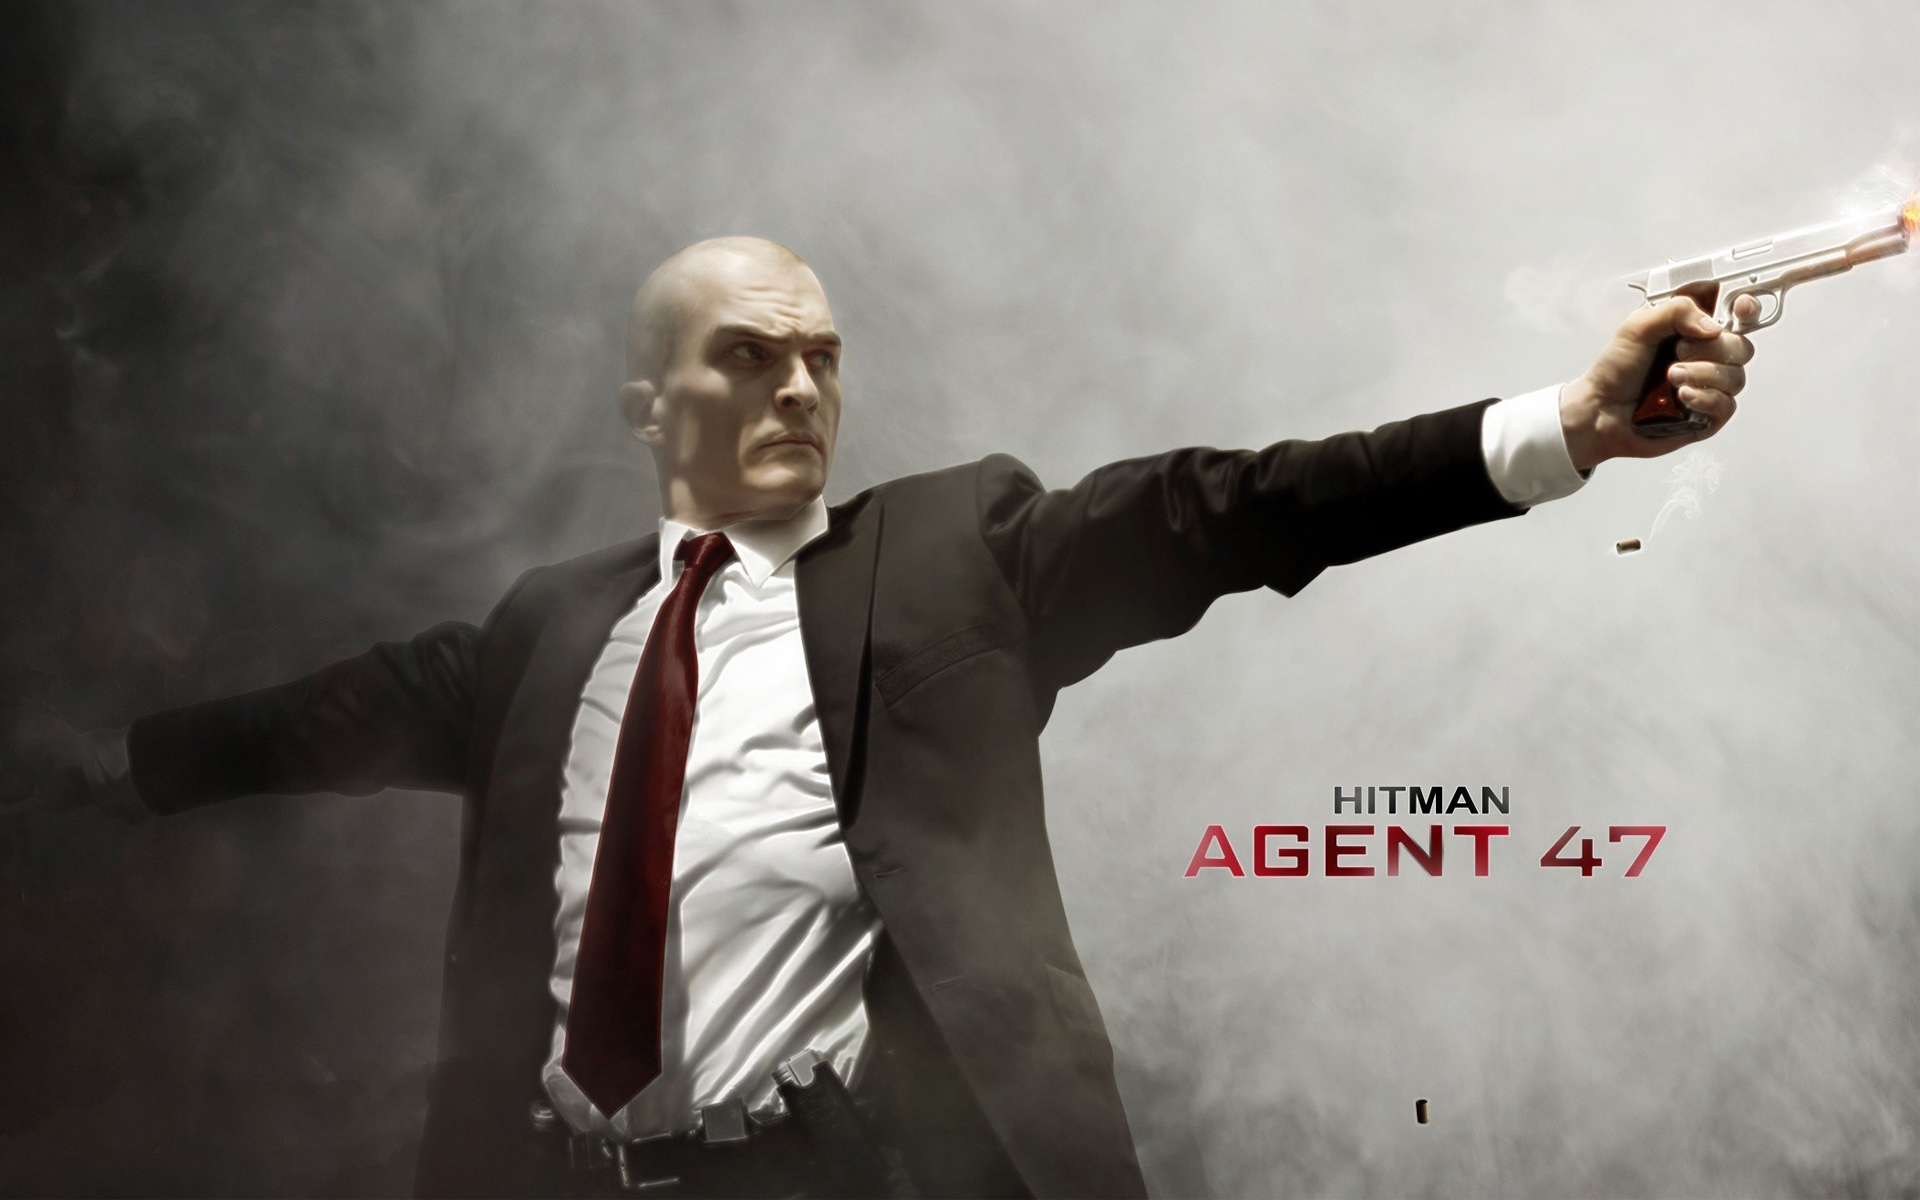 Hitman 4k Wallpapers For Your Desktop Or Mobile Screen Free And